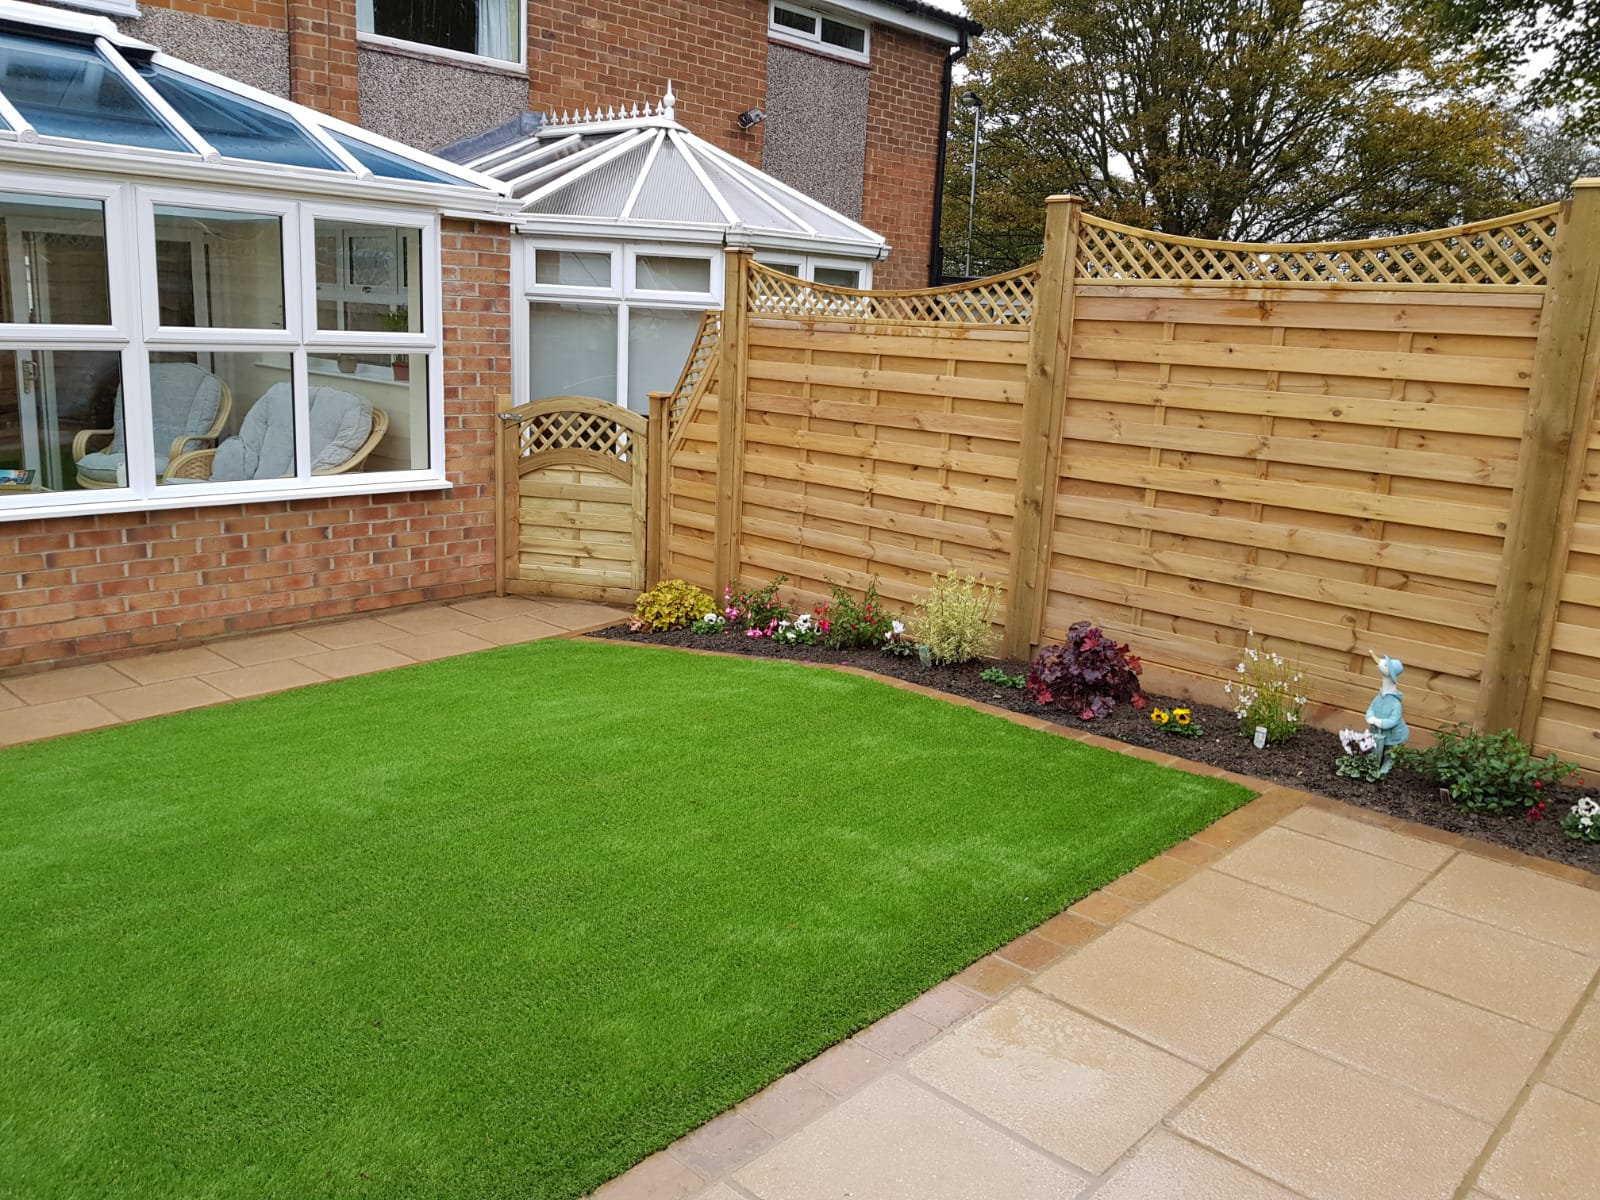 paved path with artificial grass and decorative fence panels